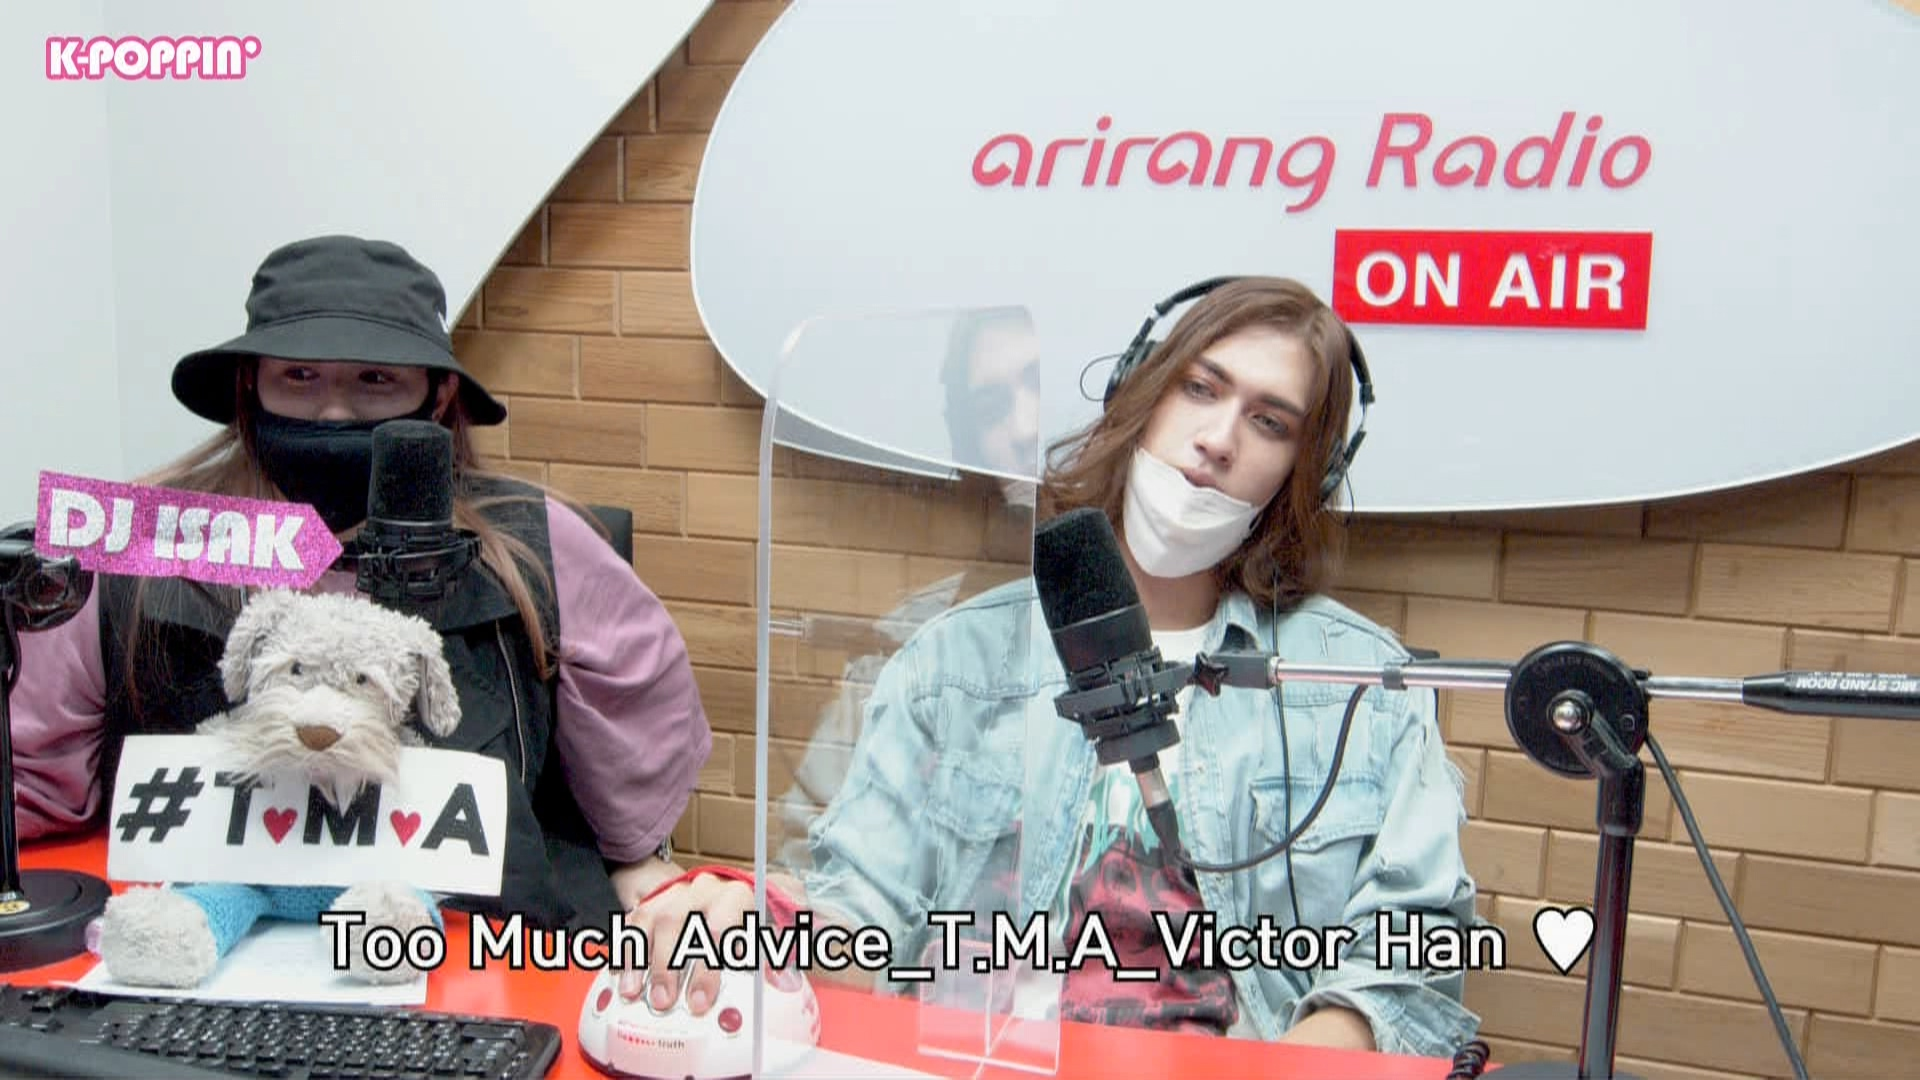 [K-Poppin'] Too Much Advice with Victor Han 빅터한 : She wanted him to pay extra attention